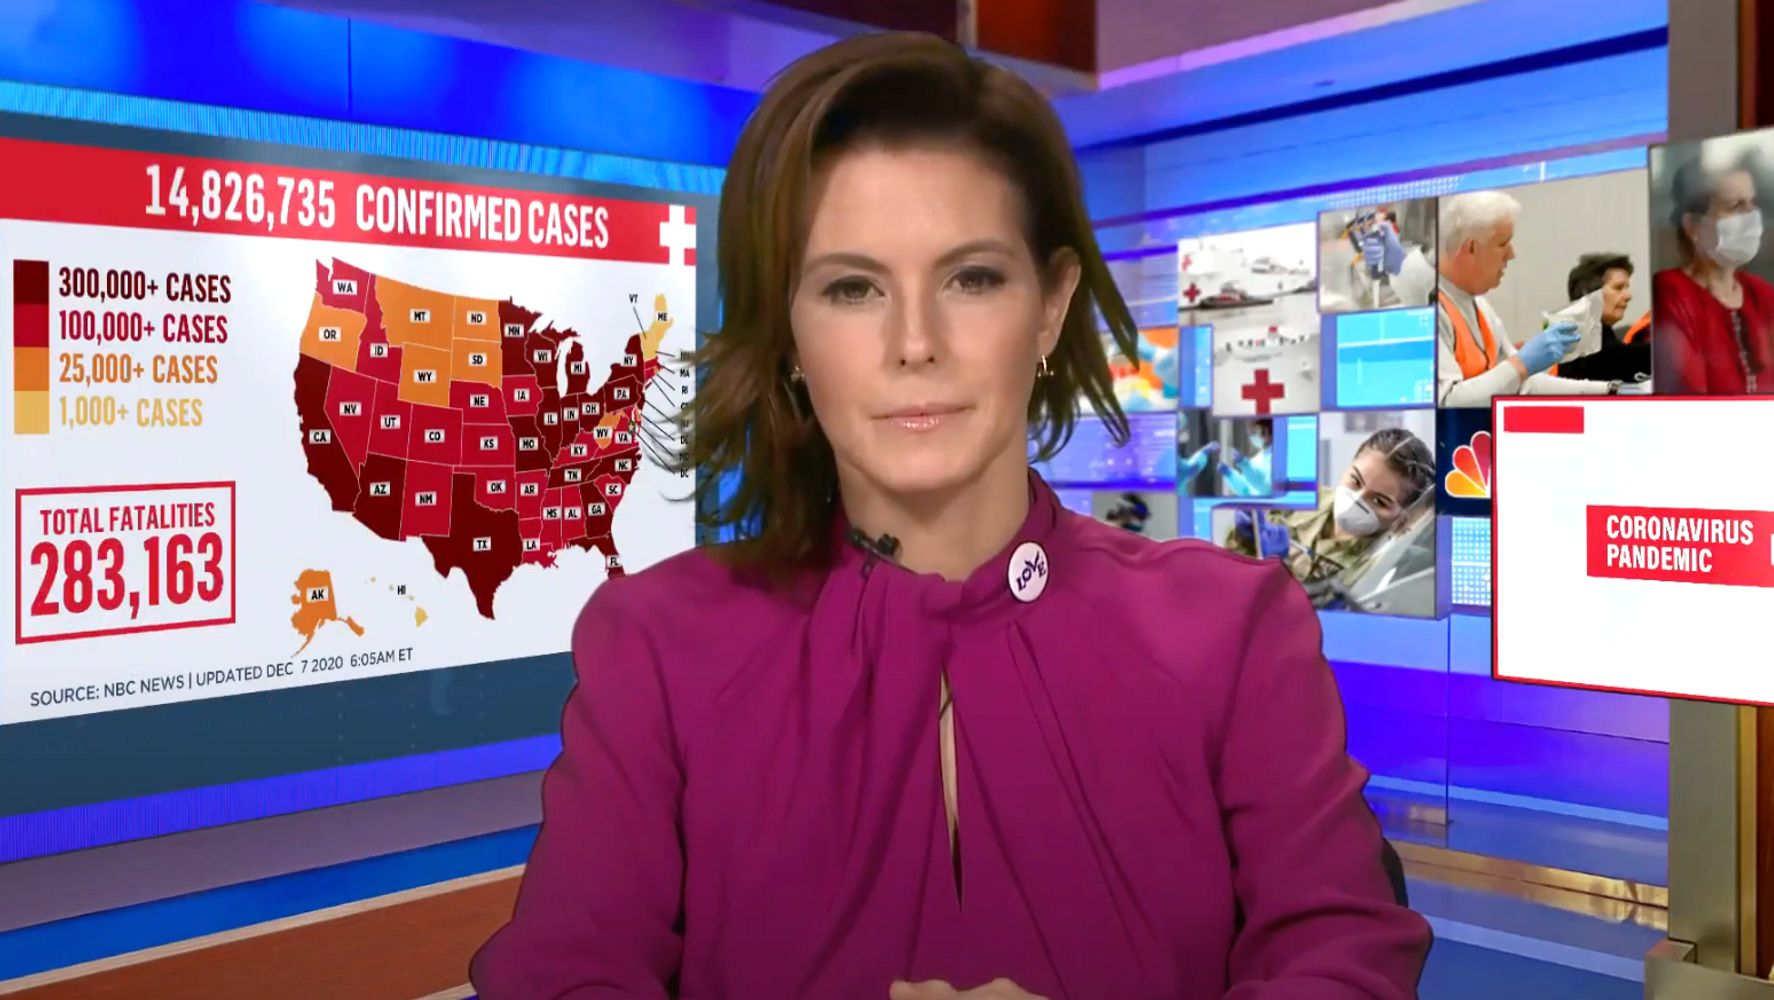 'Sick And Scared': MSNBC's Stephanie Ruhle Reveals She And Her Family Have COVID-19